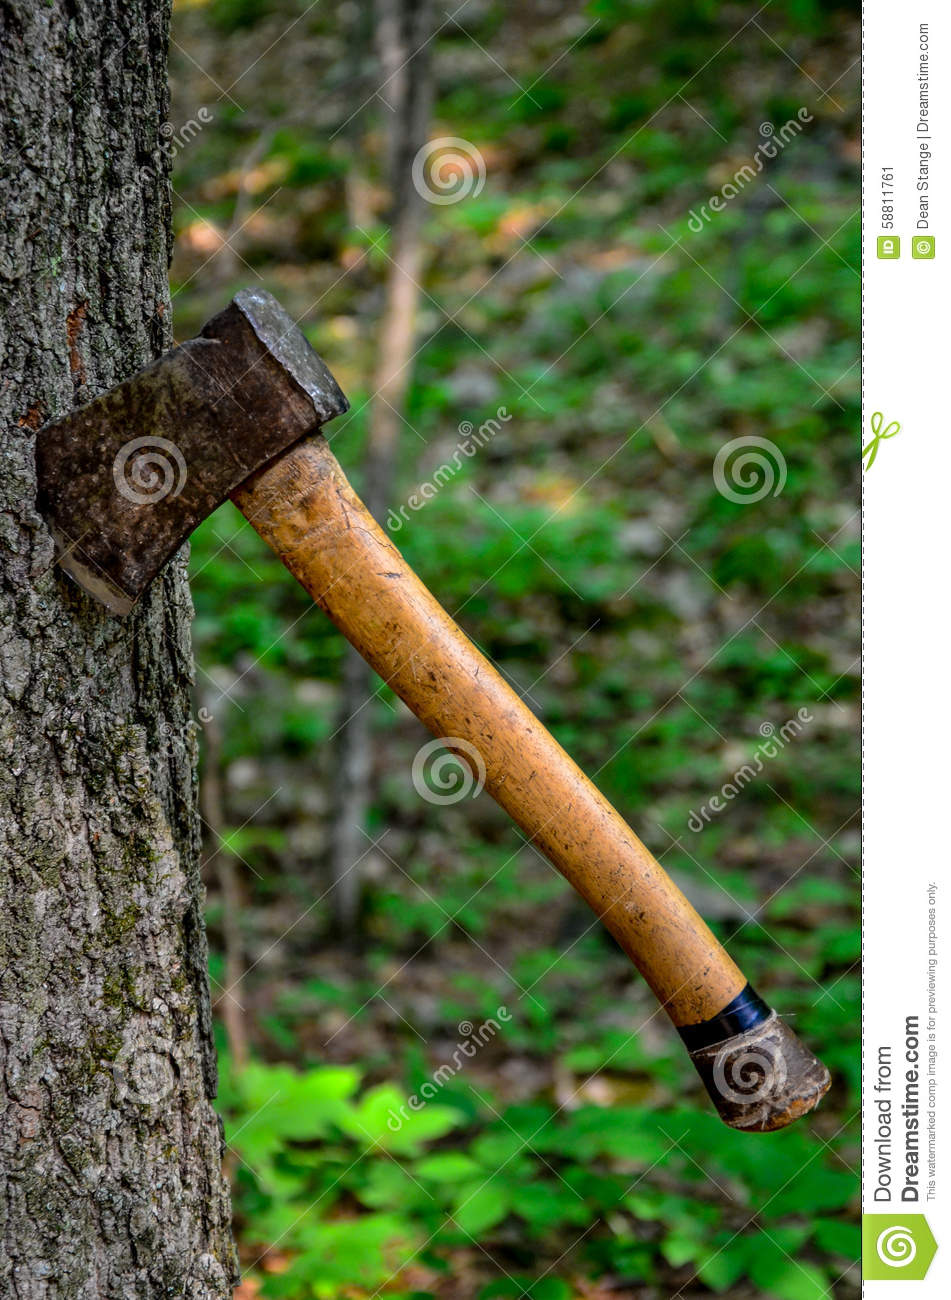 a hatchet stuck in a tree stock image image of scuffed 58811761